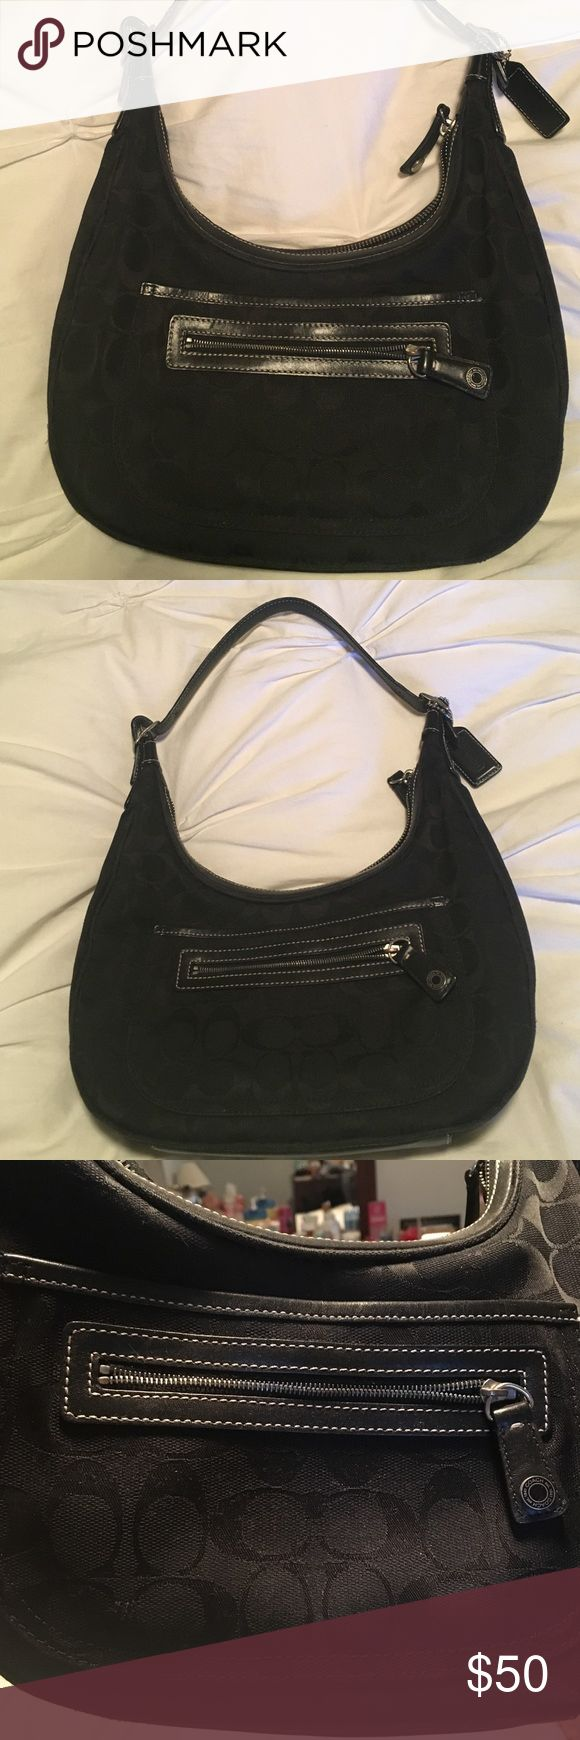 Black Coach Hobo Bag You are bidding on an authentic black Coach hobo bag. Gently used and perfect size to wear on your shoulder. Coach Bags Hobos